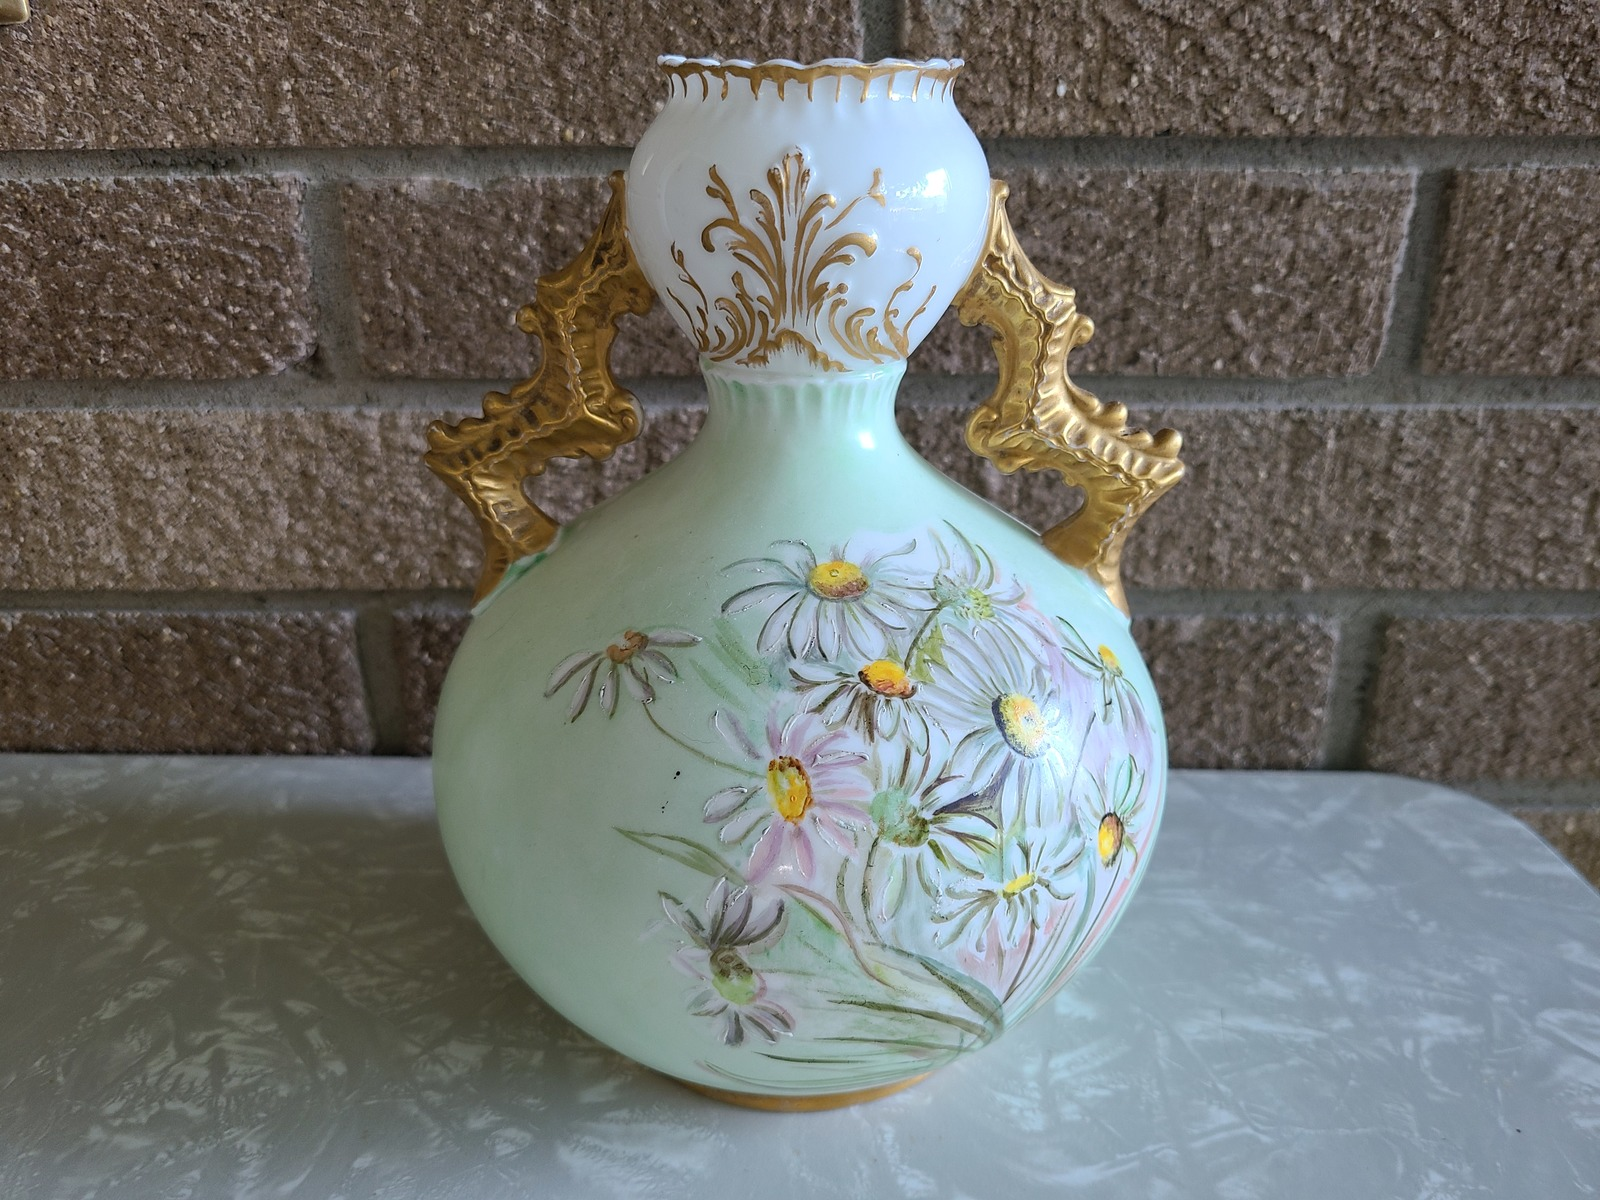 Antique Knowles, Taylor Knowles Lotusware Ceramic Handled Vase, Handpainted